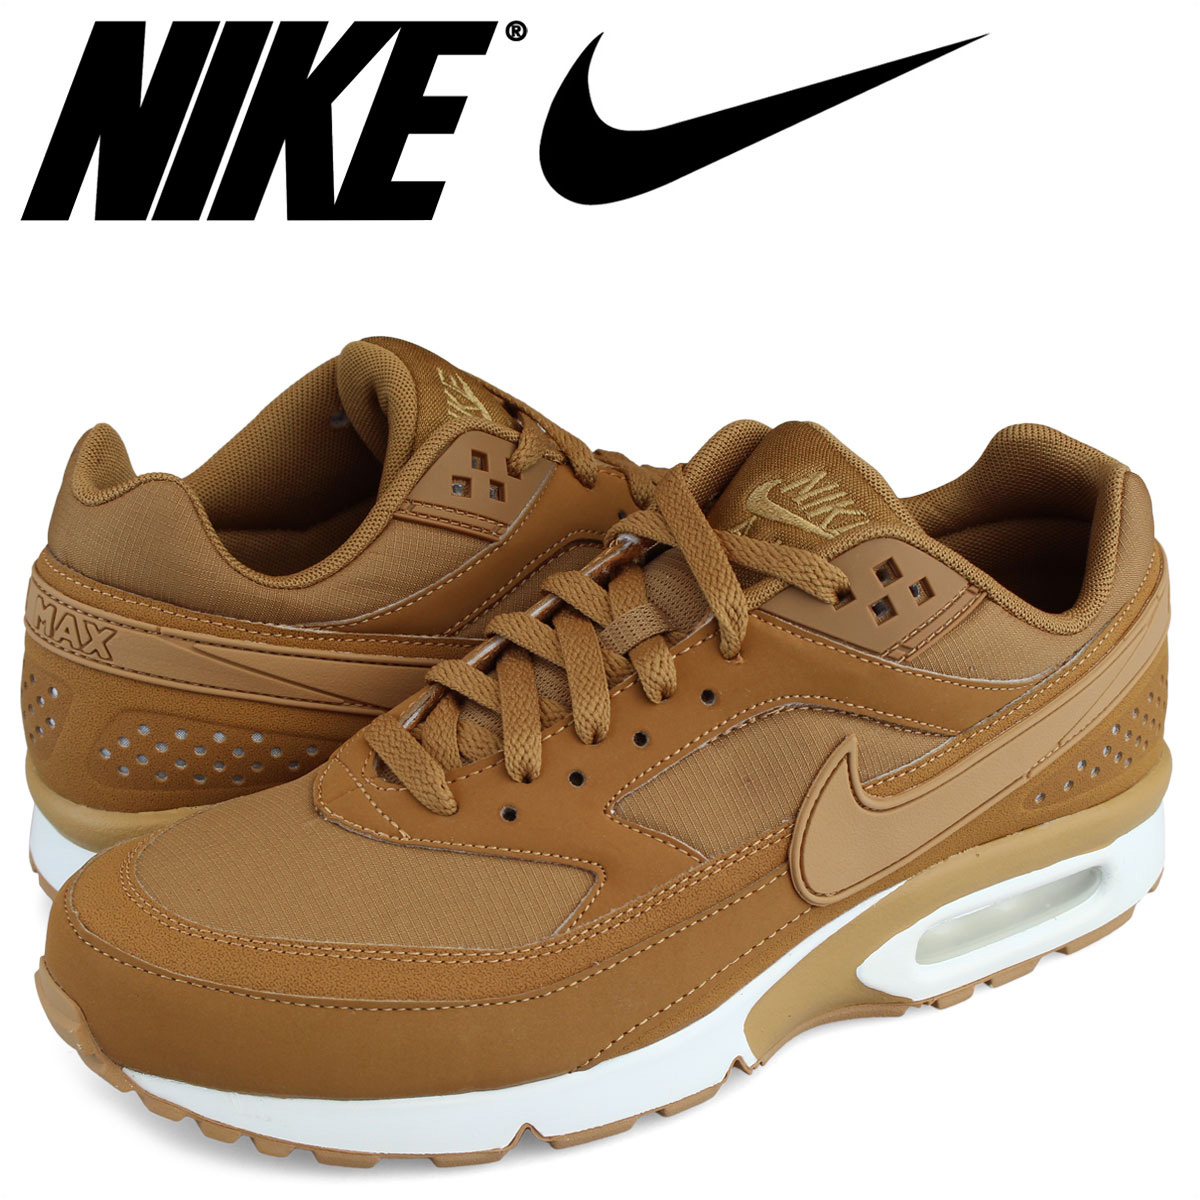 Nike NIKE Air Max BW sneakers AIR MAX 881,981 200 men's big window light brown